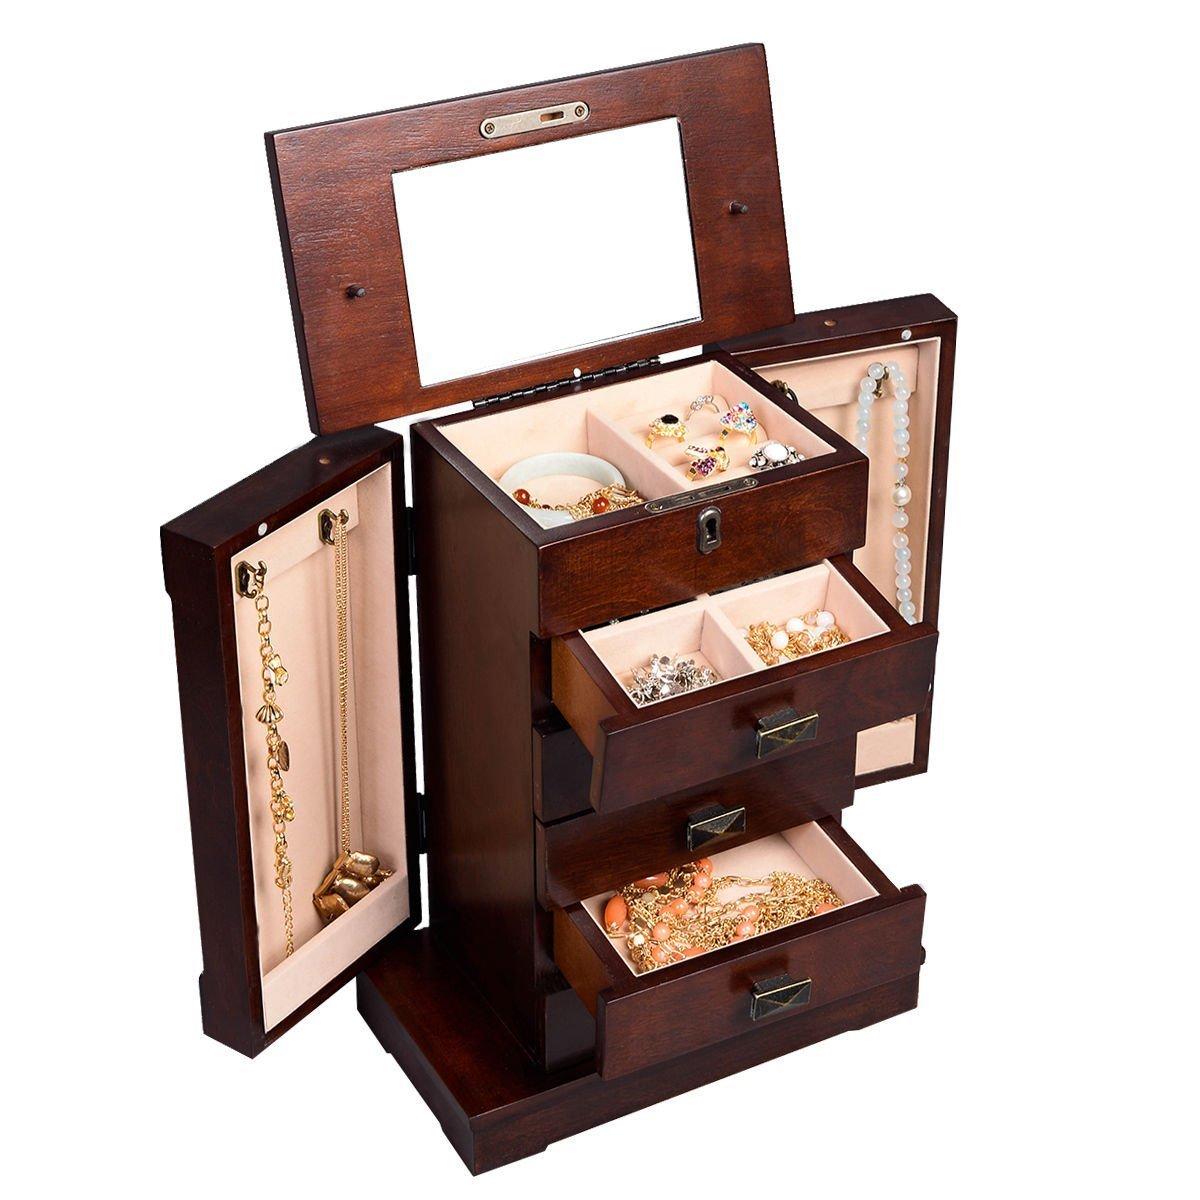 Generic YanHong150720-194 8yh1188yh lace Wood New Storage Chest Stand Organizer N Armoire Jewelry Cabinet Box Armoire J Organizer Necklace Wood New x Storage Armoire Jewelry Cabinet Box lry Cabin Organizer Necklace Wood New